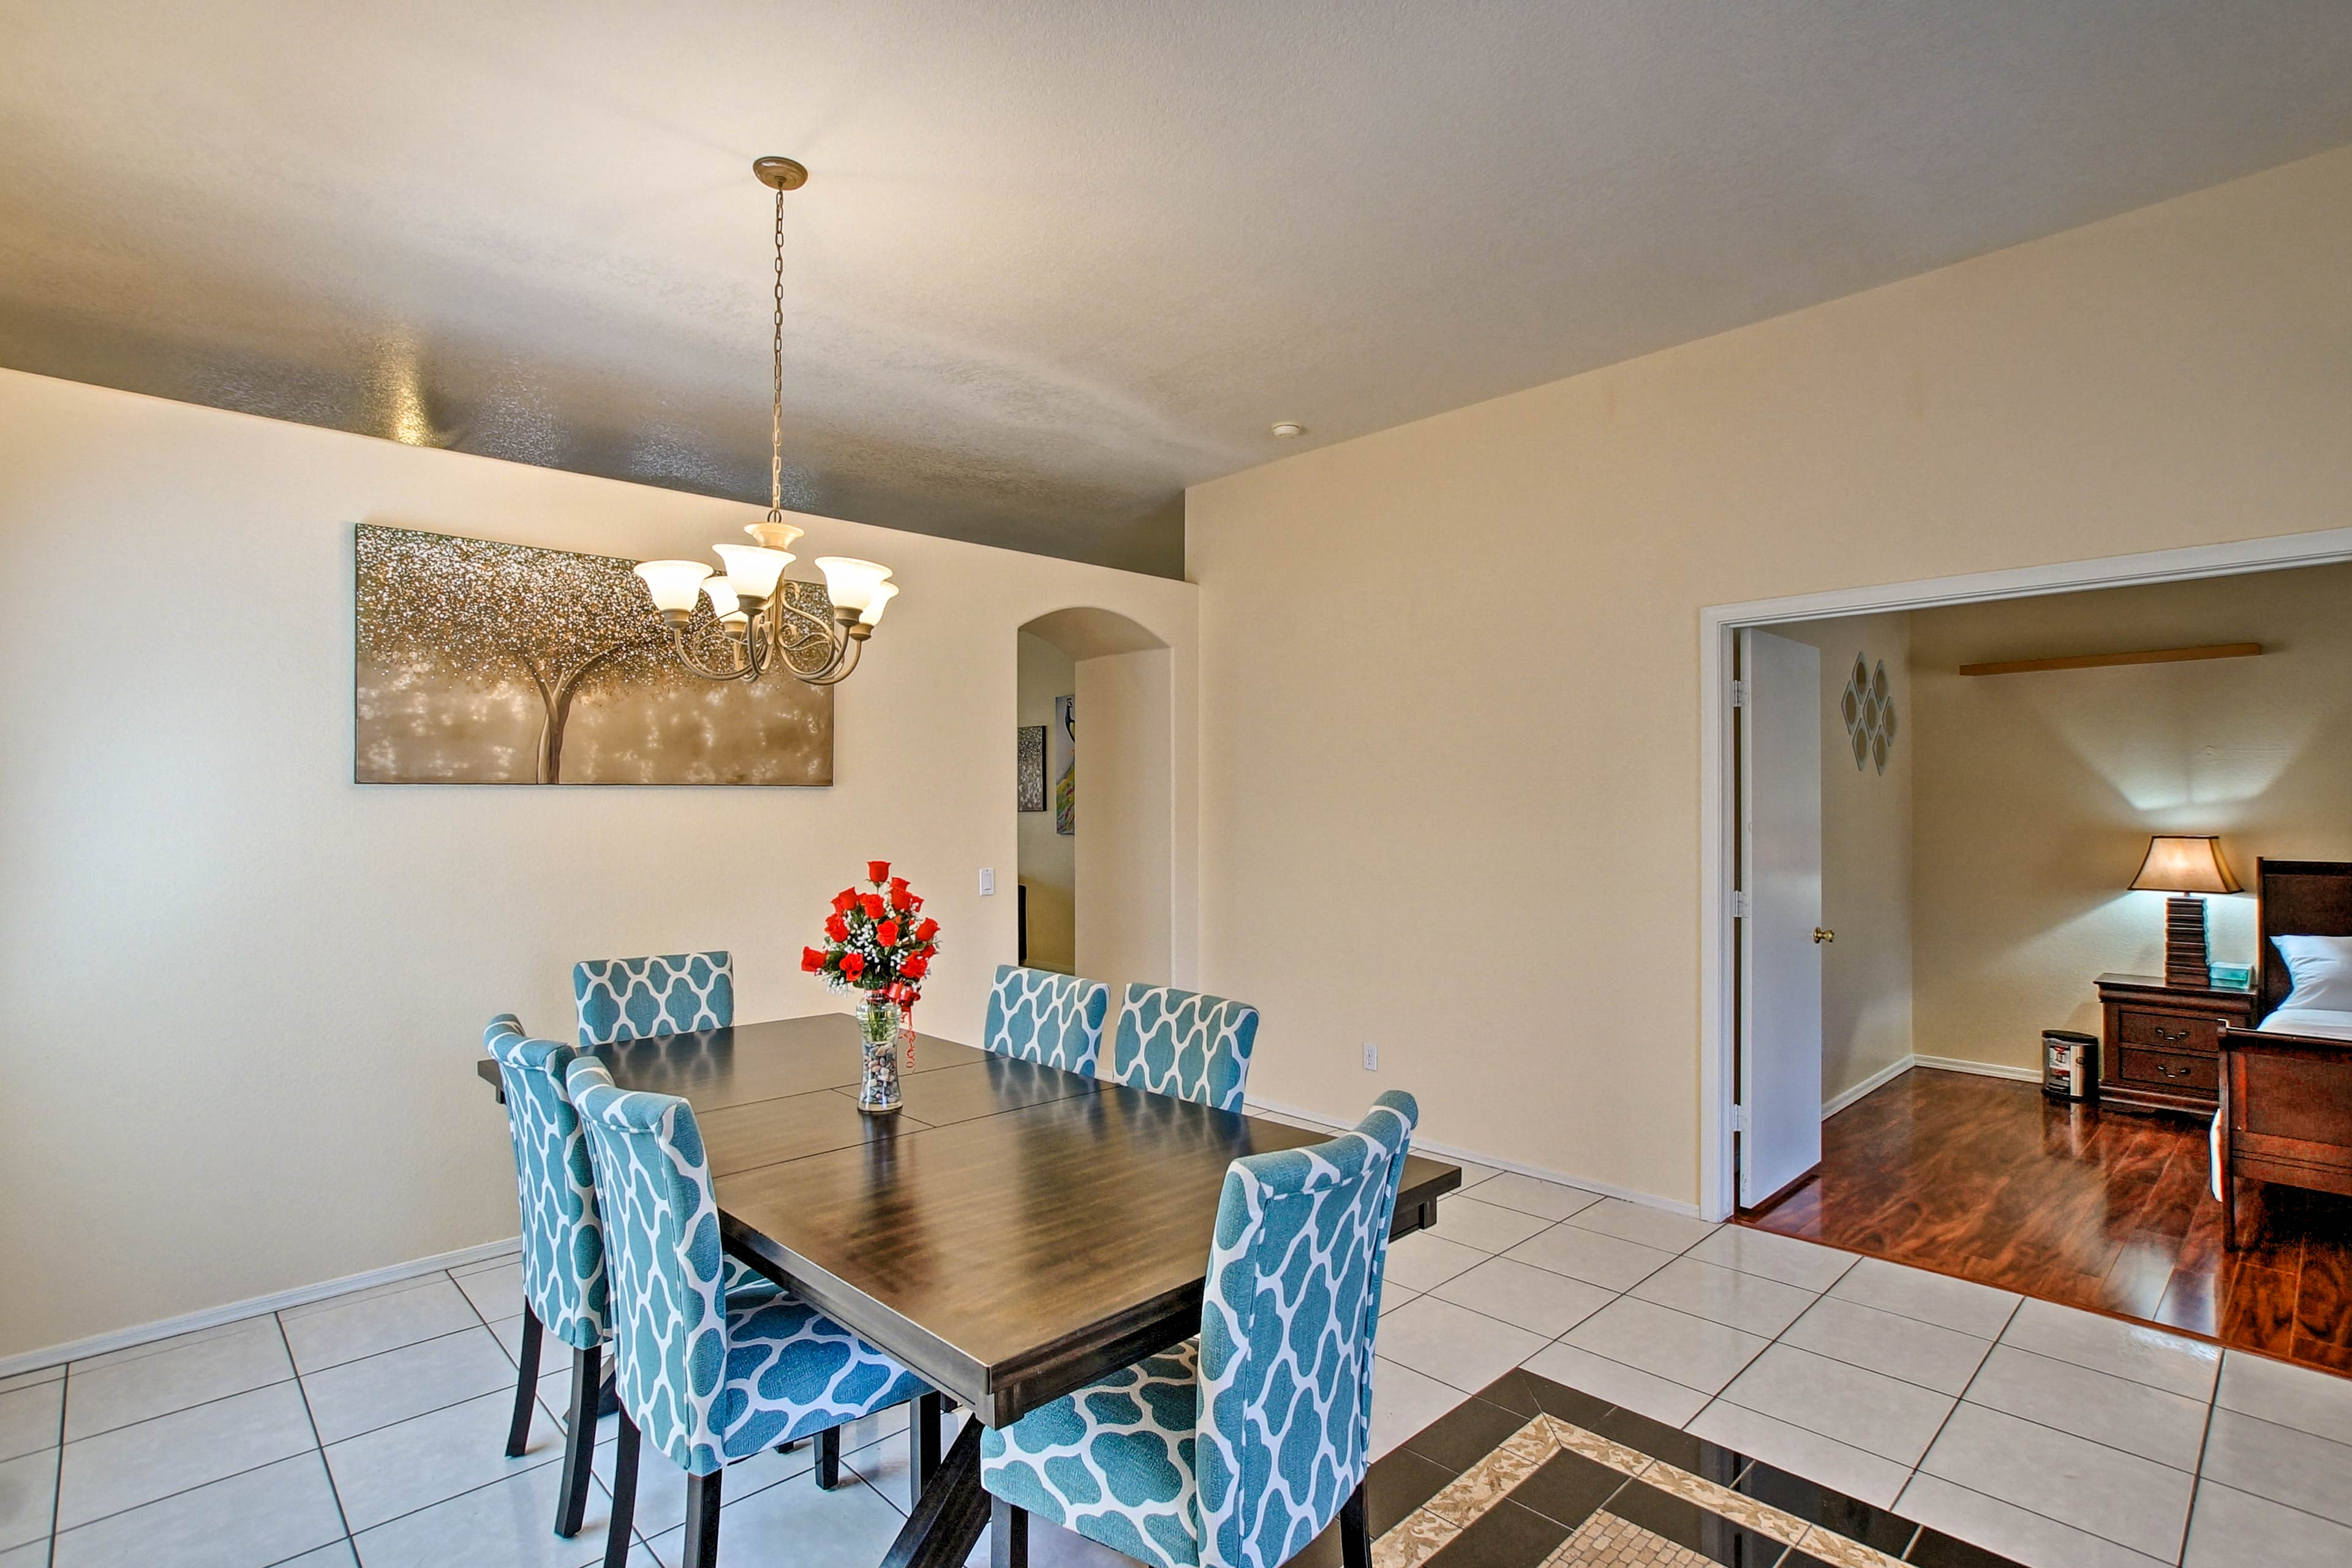 There is also an additional dining room for family-style feasts.